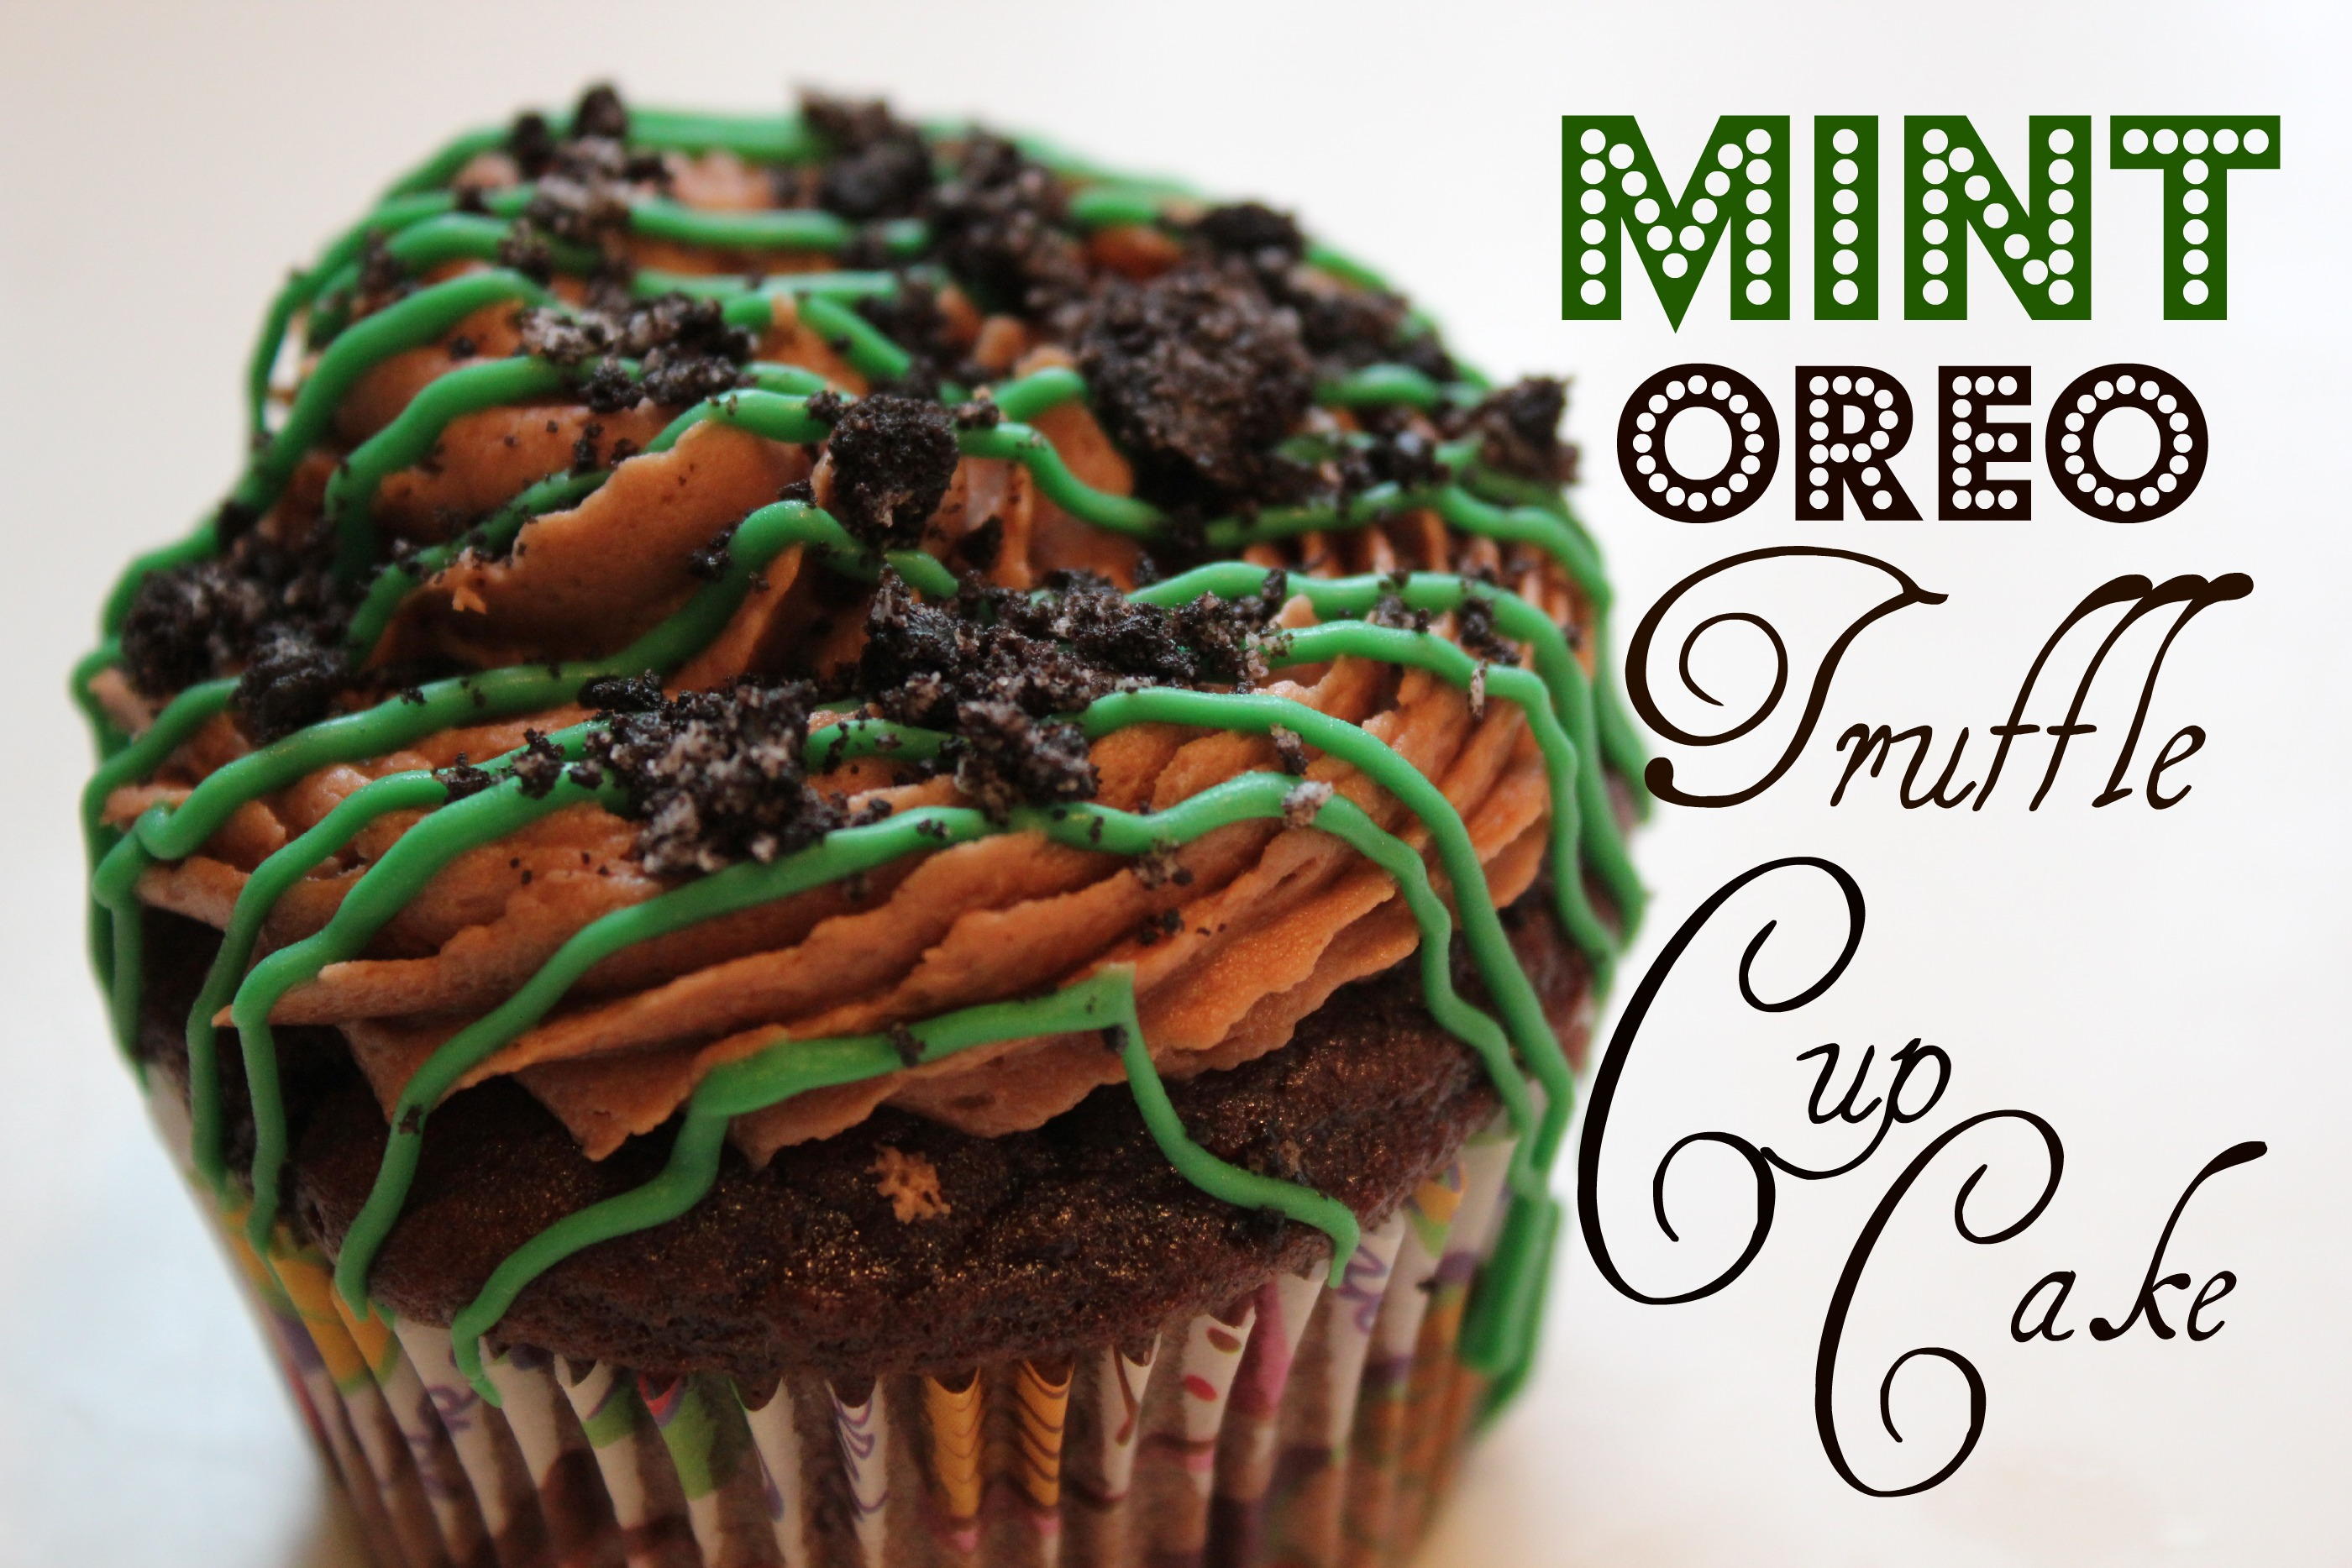 fudge packed with mint truffles mint truffle oreo fudge smooth fudge ...